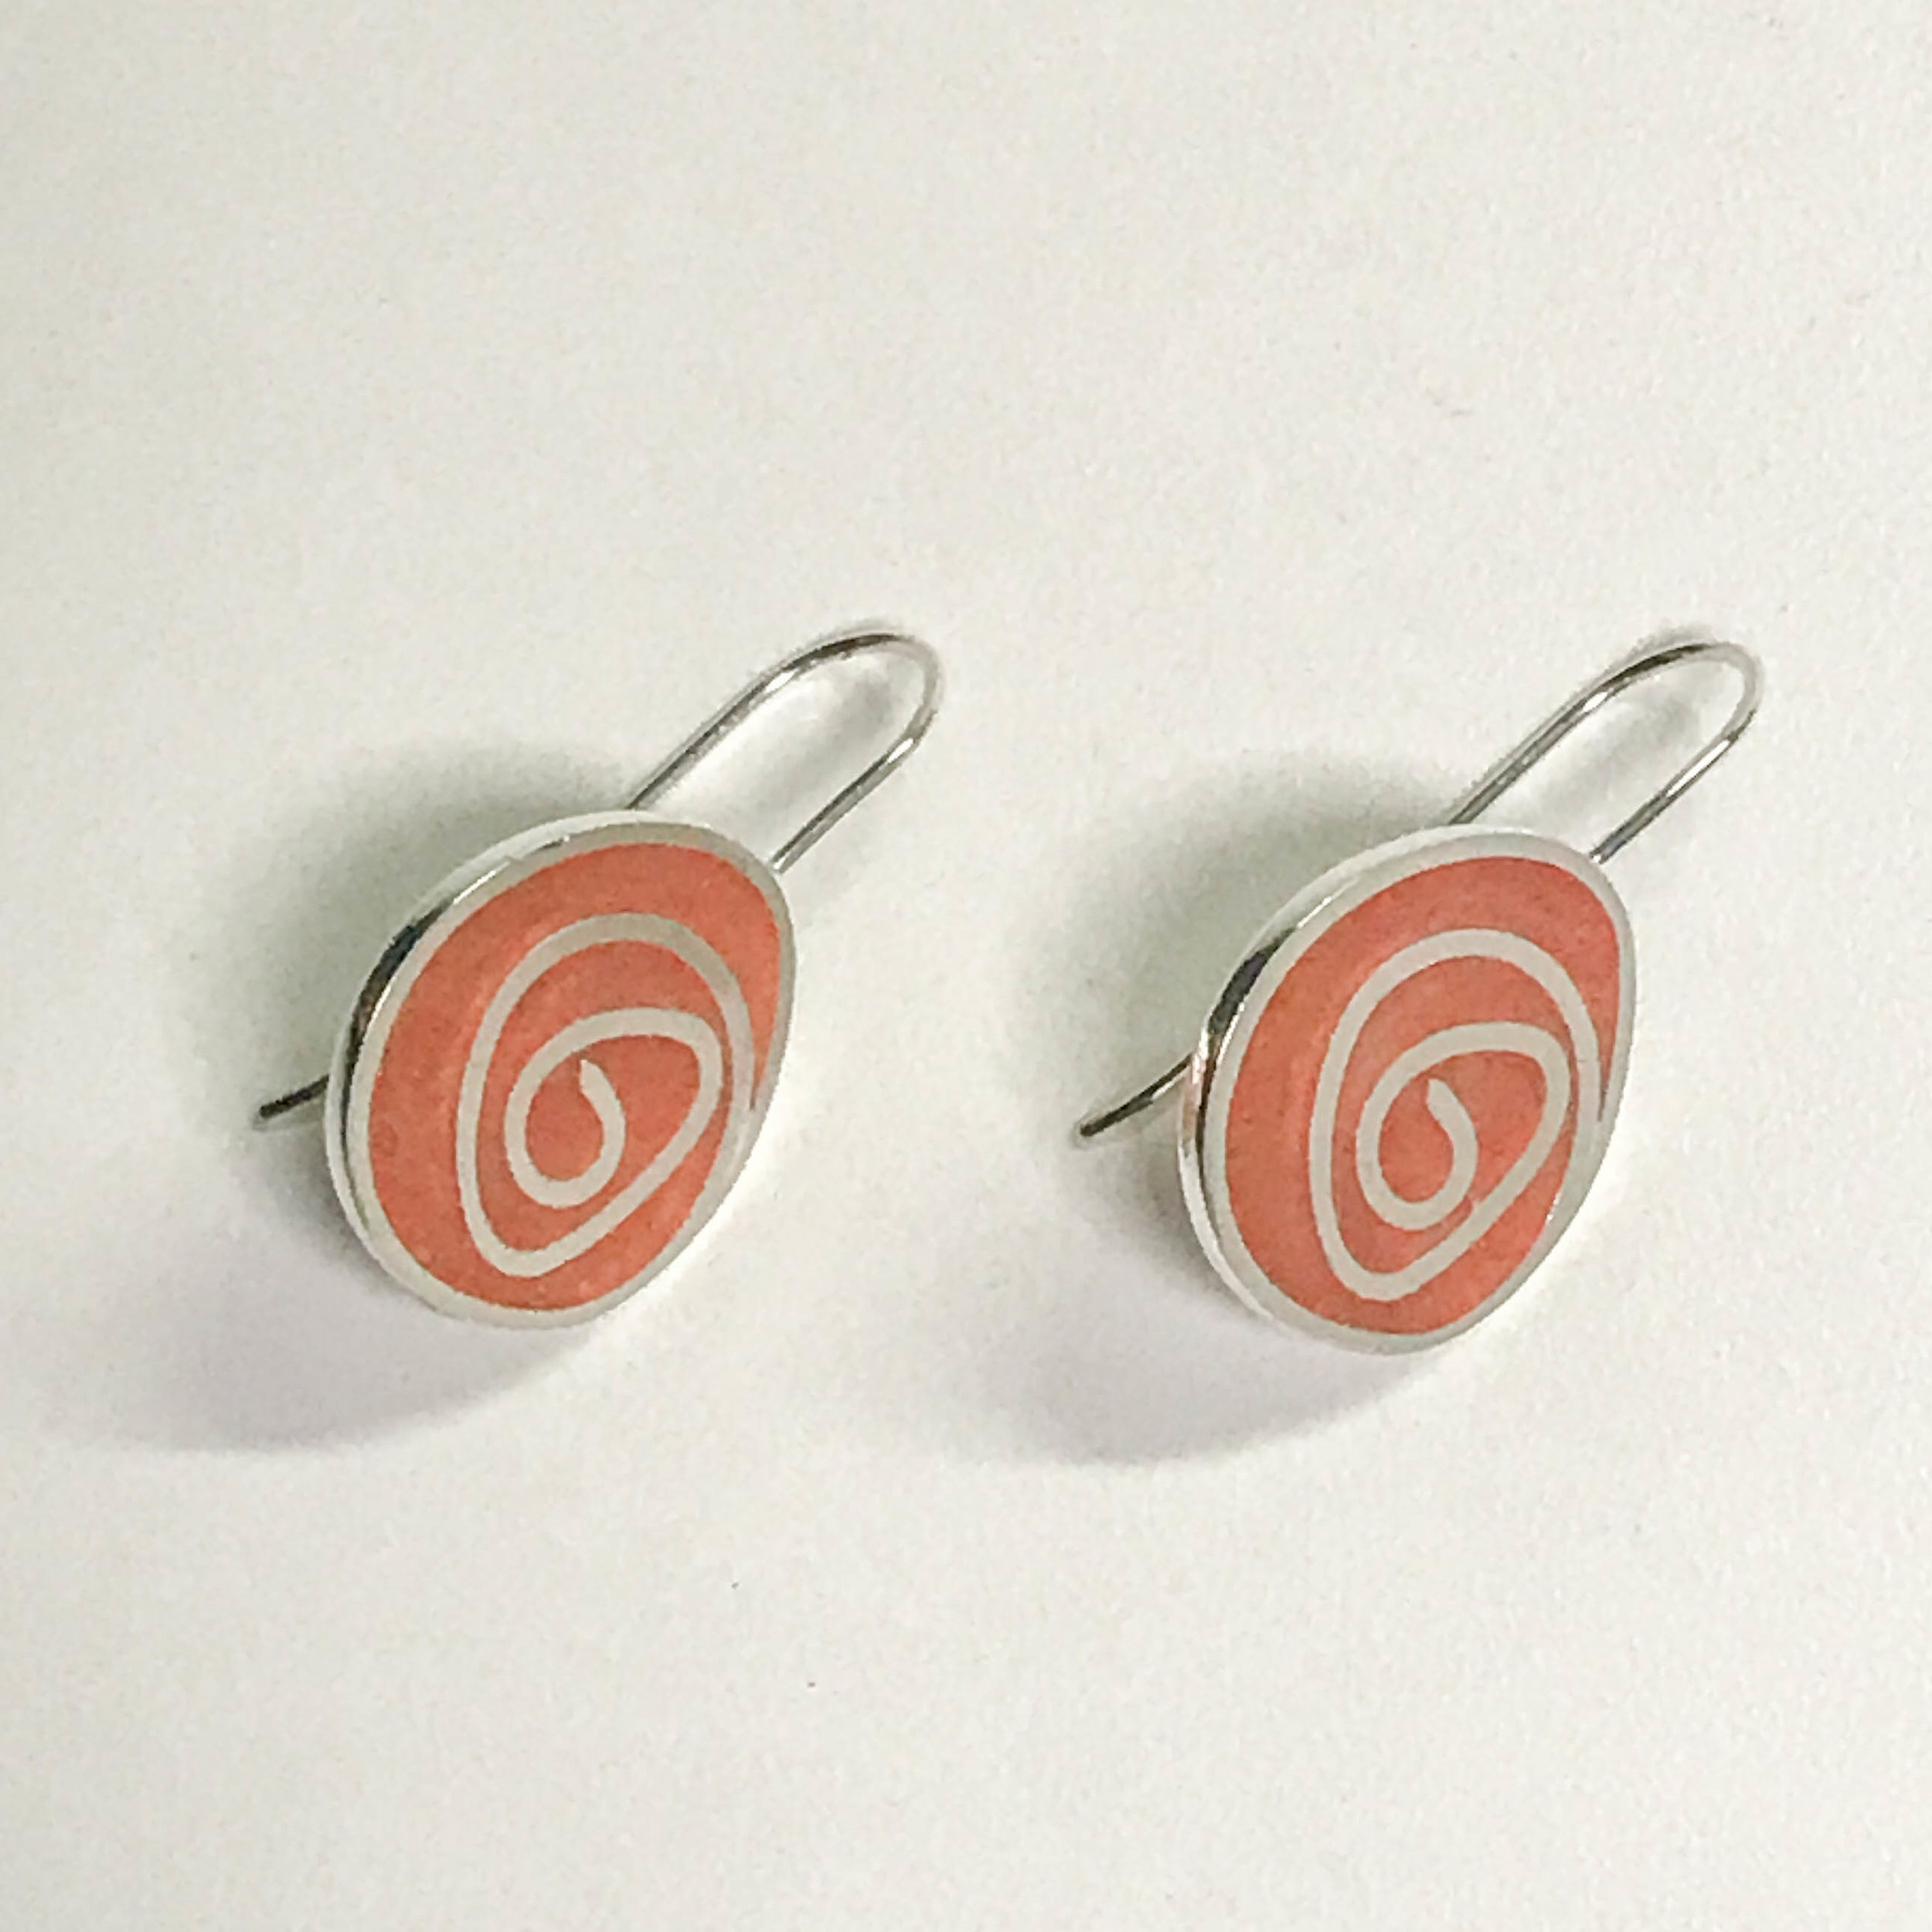 Swirl earrings, sterling silver and resin inlay, $90